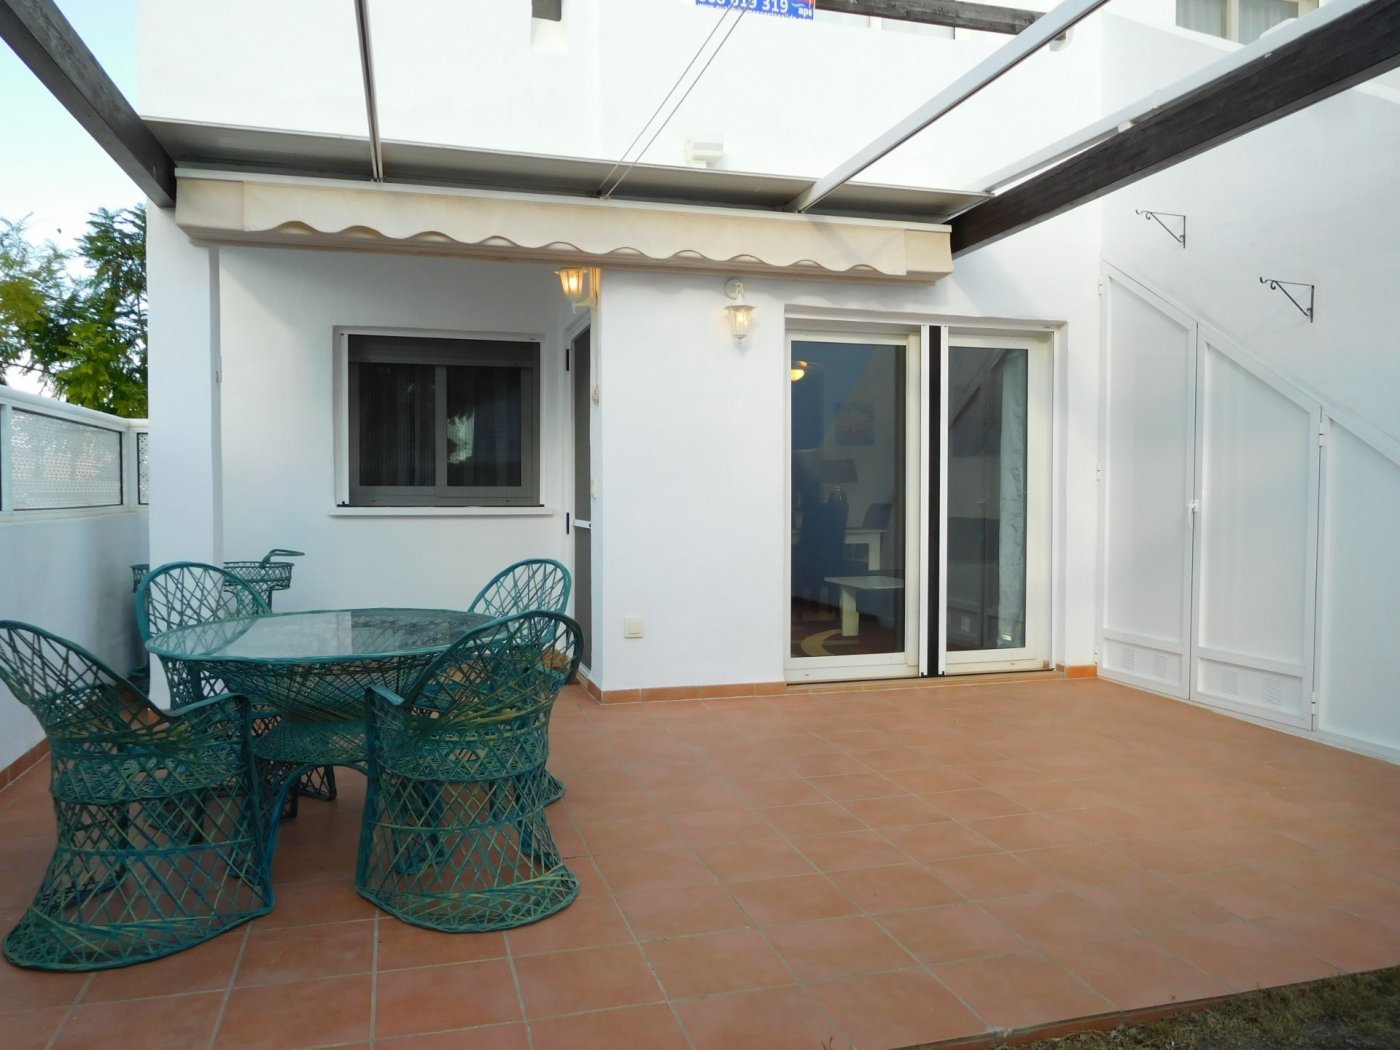 Gallery Image 16 of Flat For rent in Condado De Alhama, Alhama De Murcia With Pool